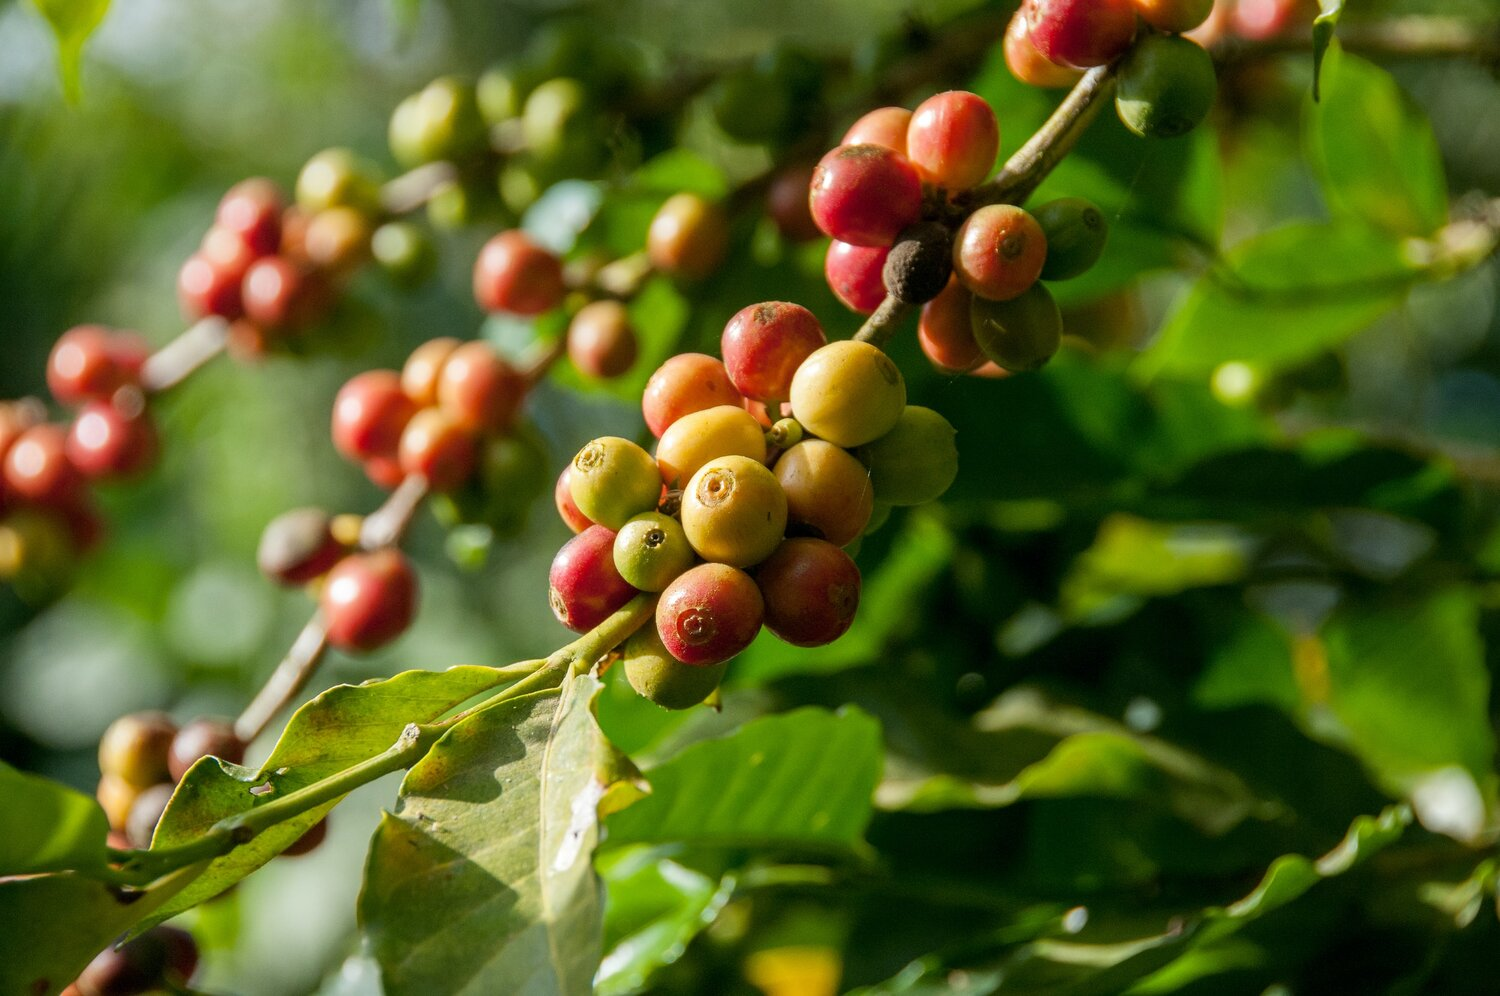 Coffee berries from a coffee plantation